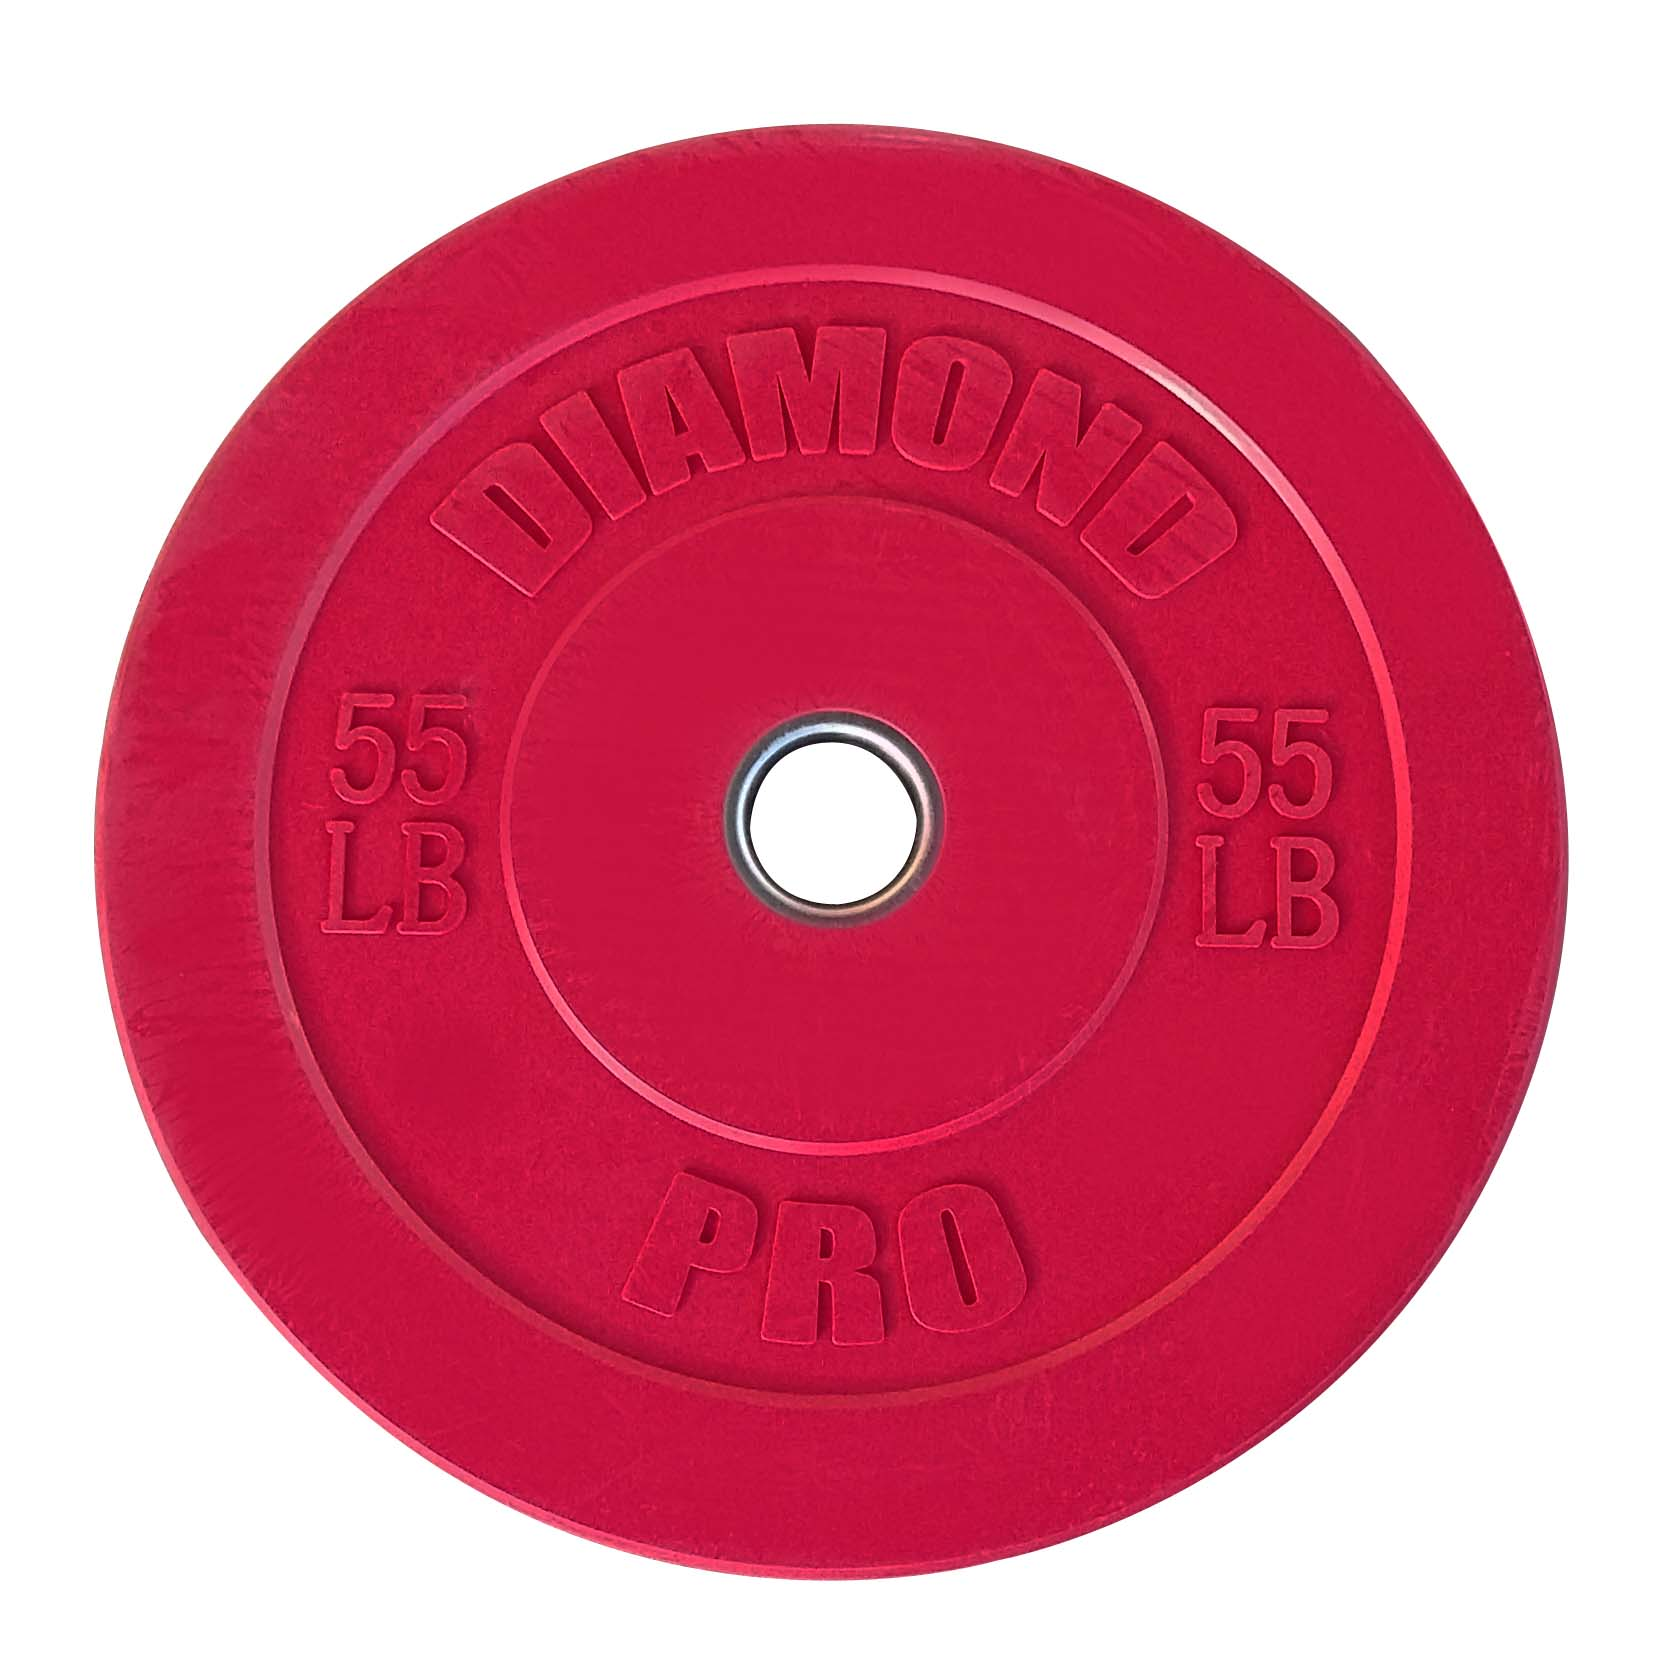 Diamond Pro 55 lb Color Bumper Plate Single